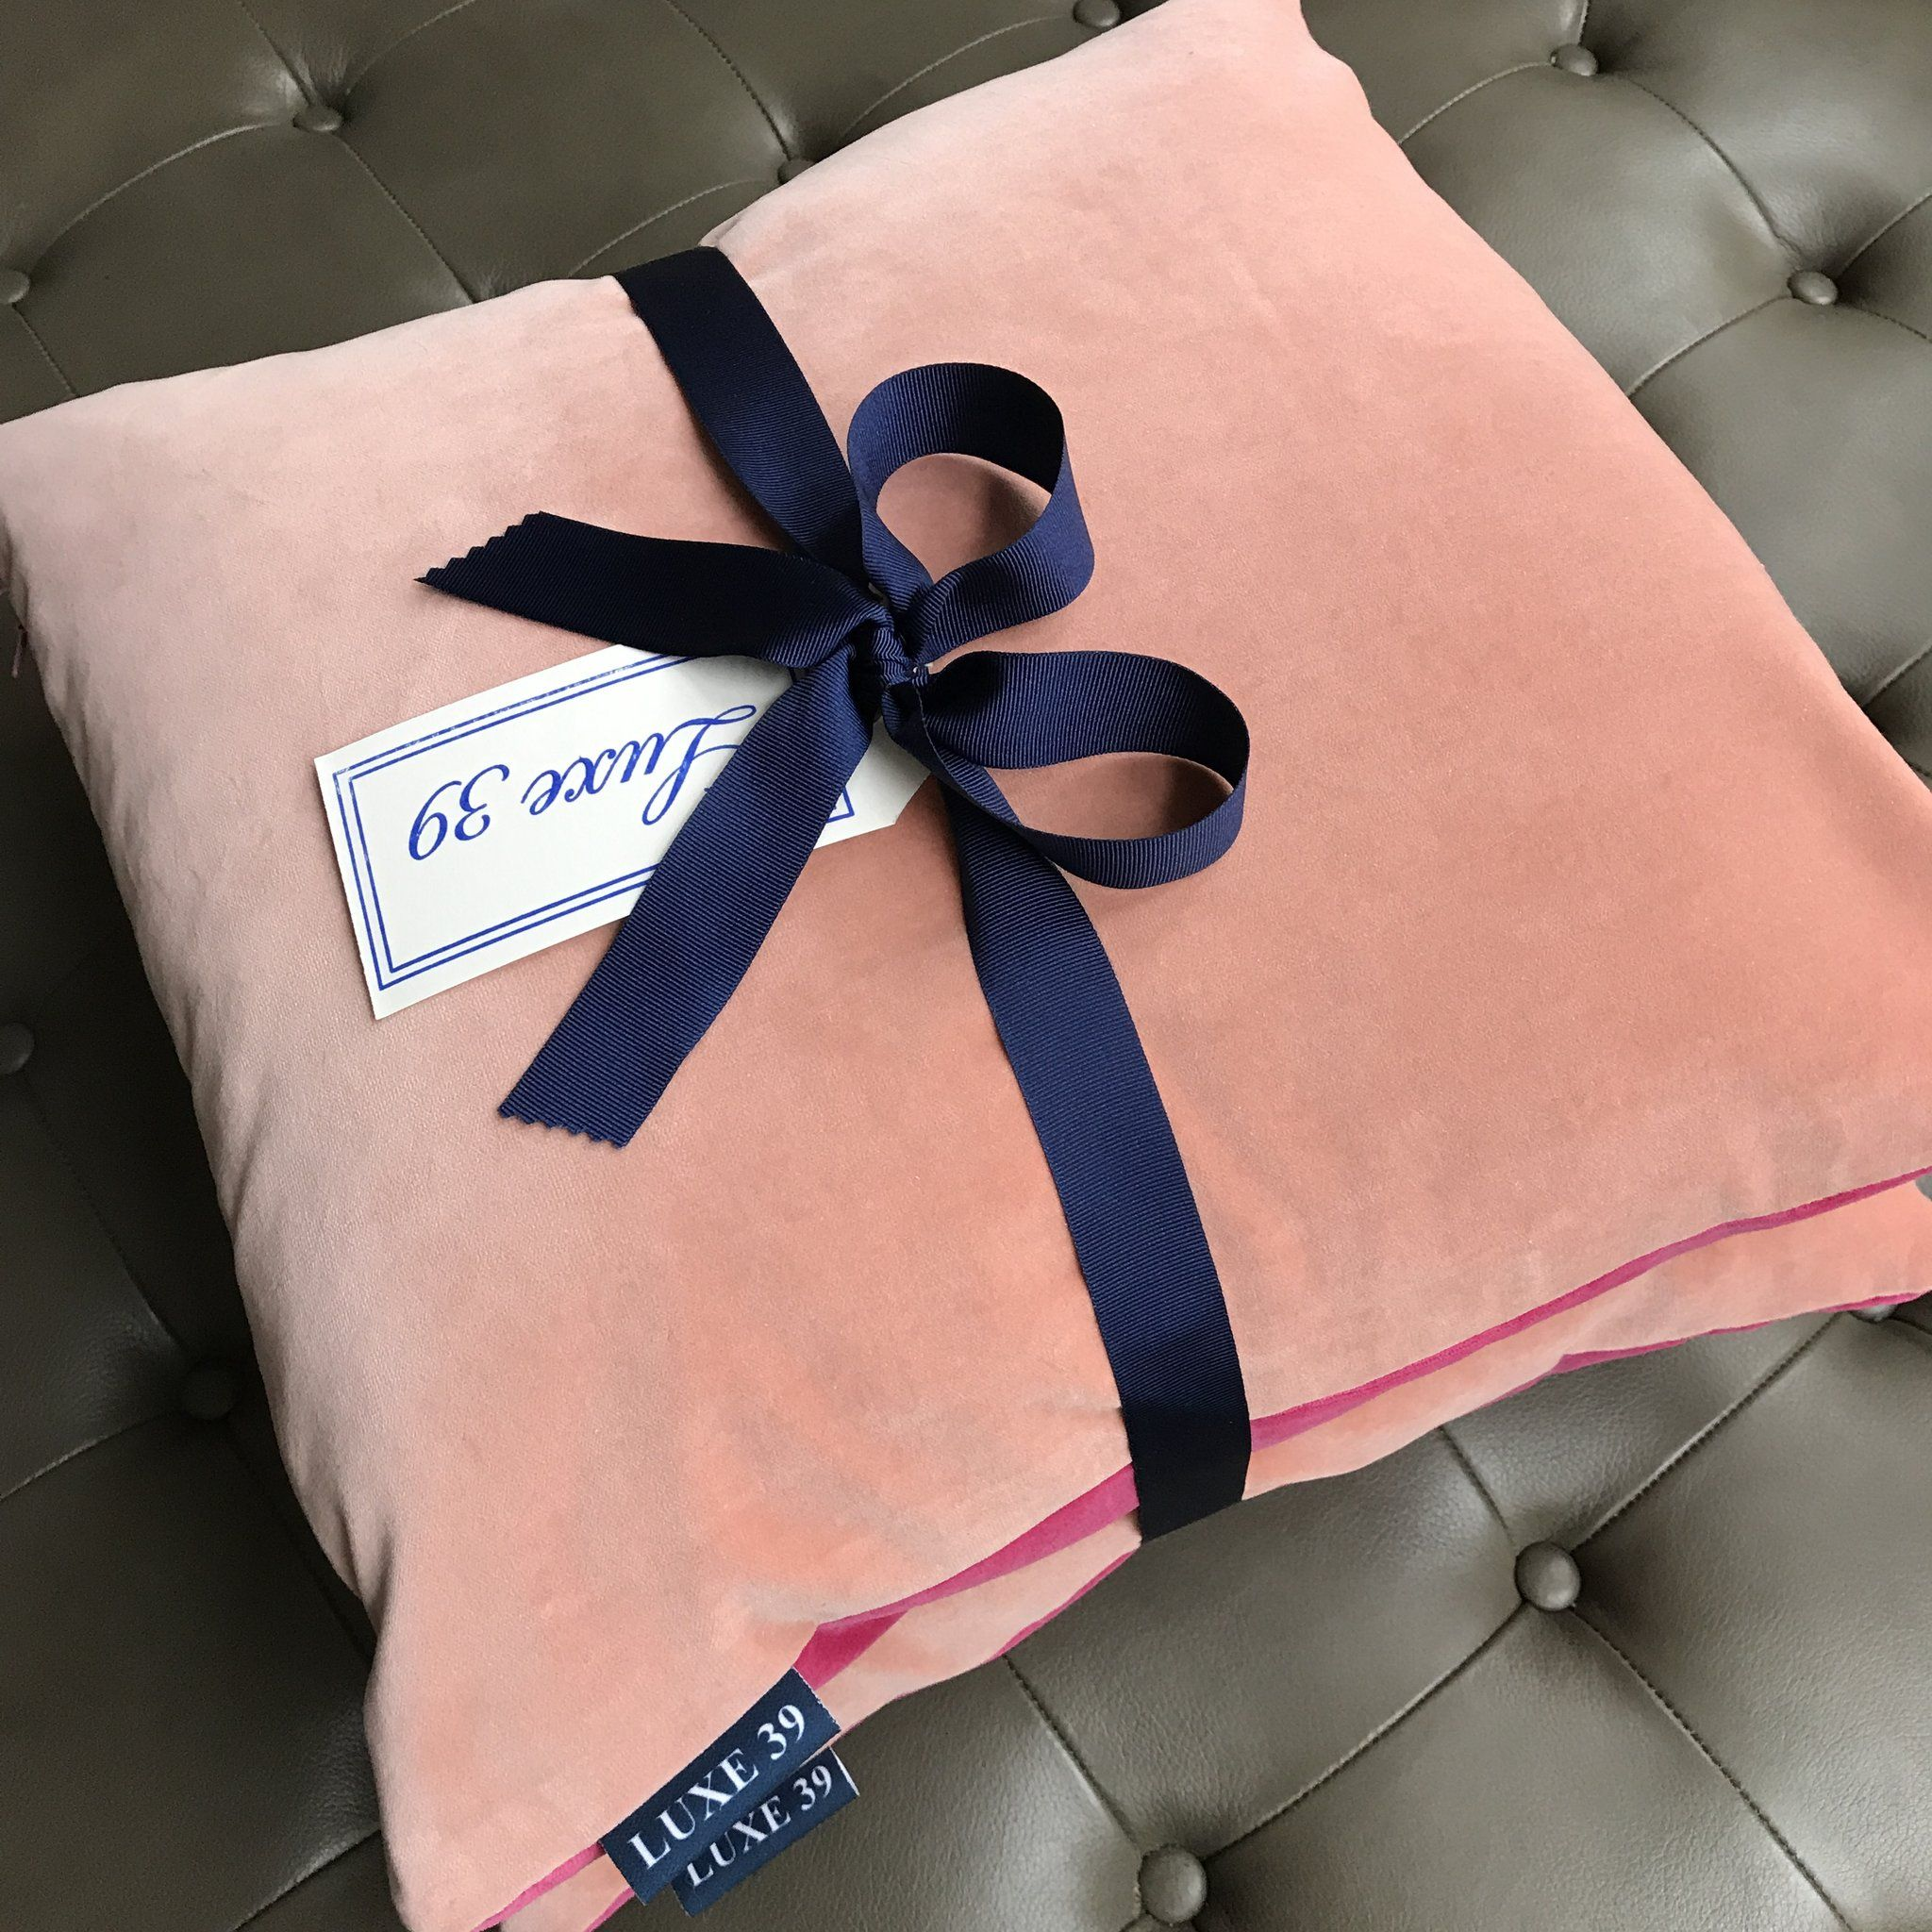 Luxury Velvet Cushions With Two Sides Blush Pink Cushion And Raspberry